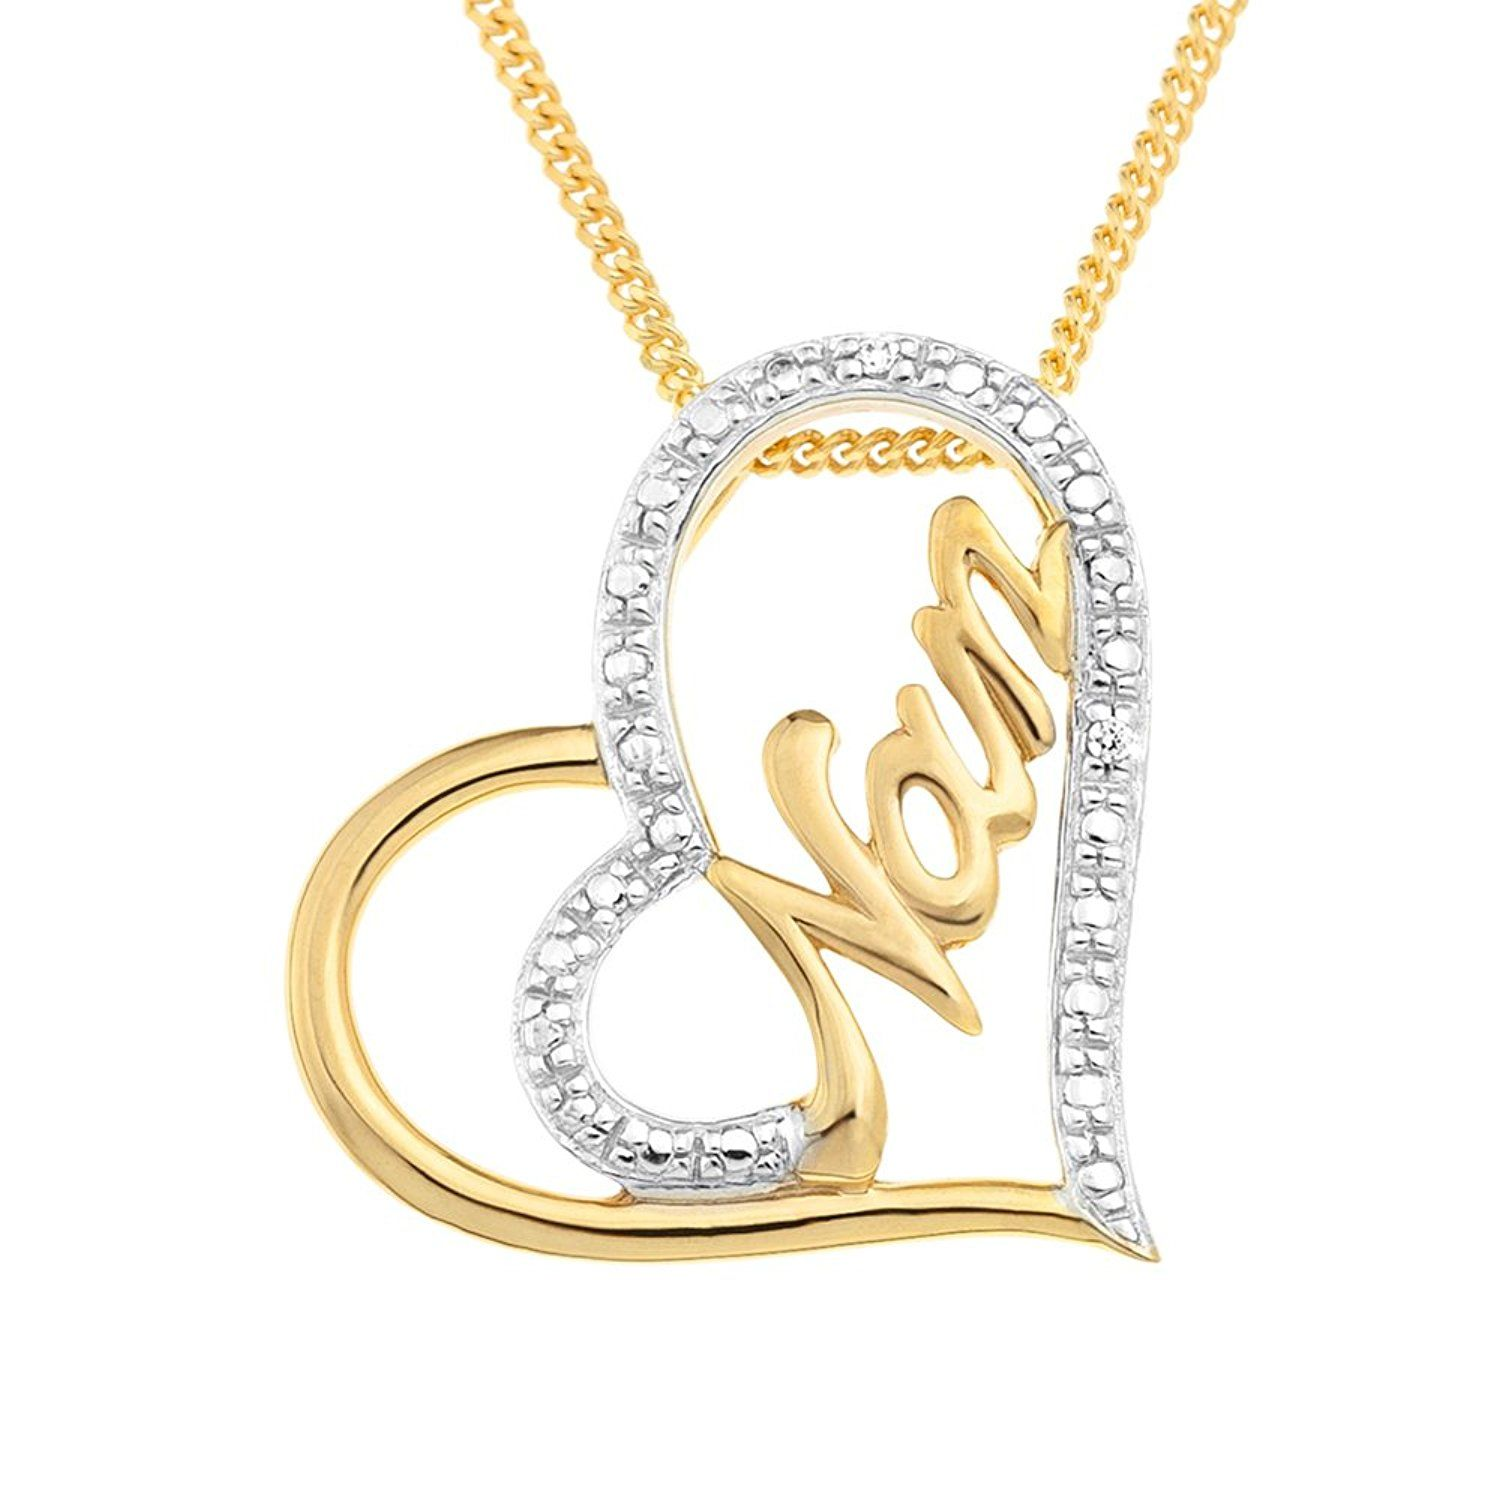 Ornami Gold Plated Silver CZ Heart Shape 'Love' Message Pendant 46cm Chain u6xywX7Oor